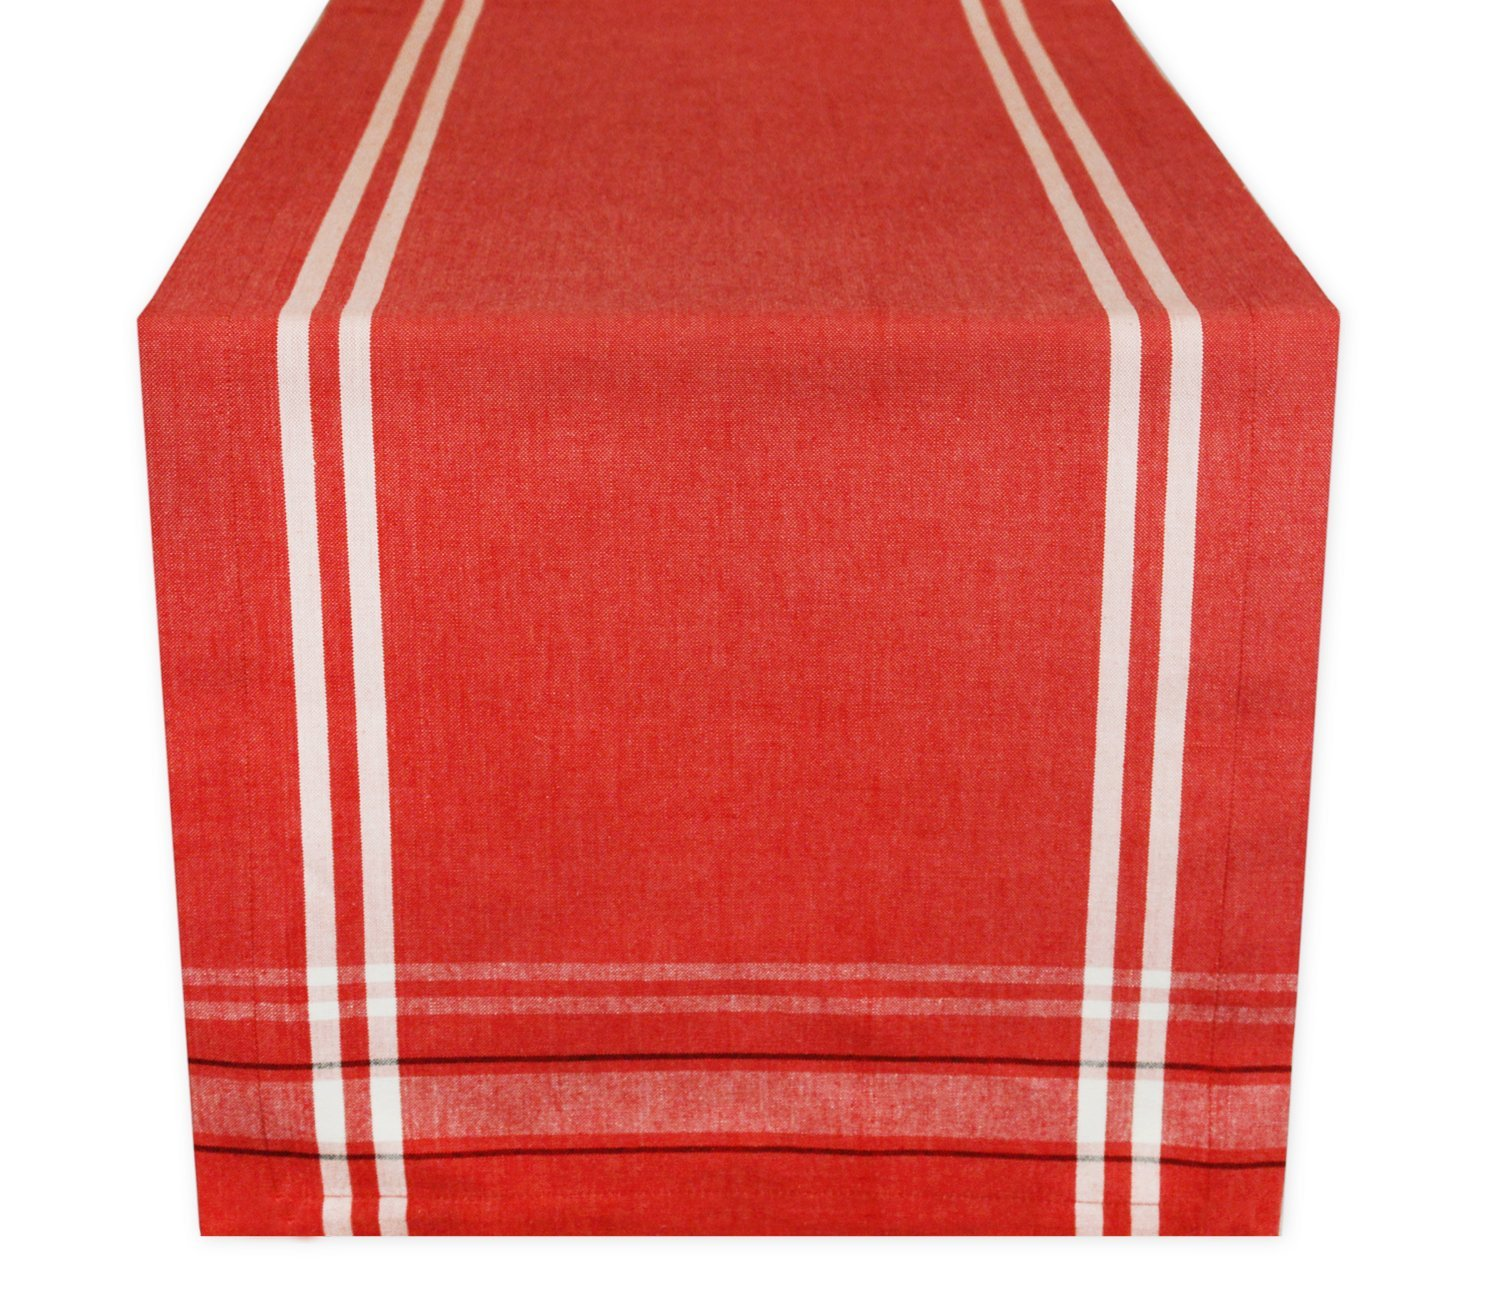 DII 100% Cotton, Machine Washable, Everyday French Stripe Kitchen Table Runner For Dinner Parties, Events, Decor 14x108'' - Red Chambray